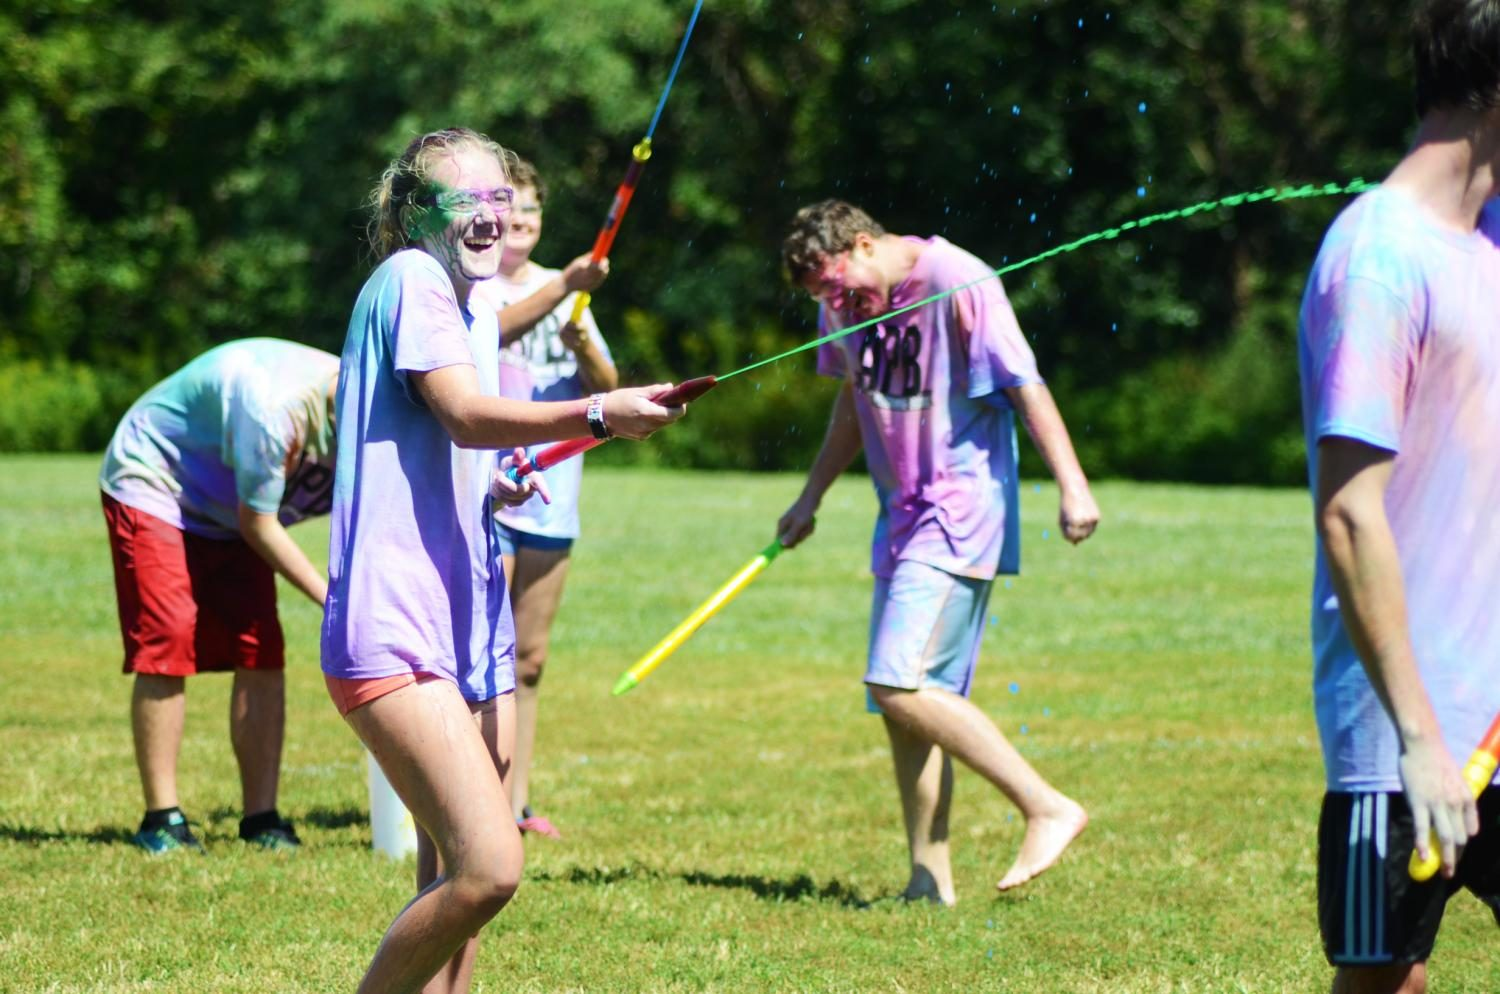 Freshman Paige Courtright ran through the rugby fields shooting paint at fellow students during the Paint War Sunday afternoon.